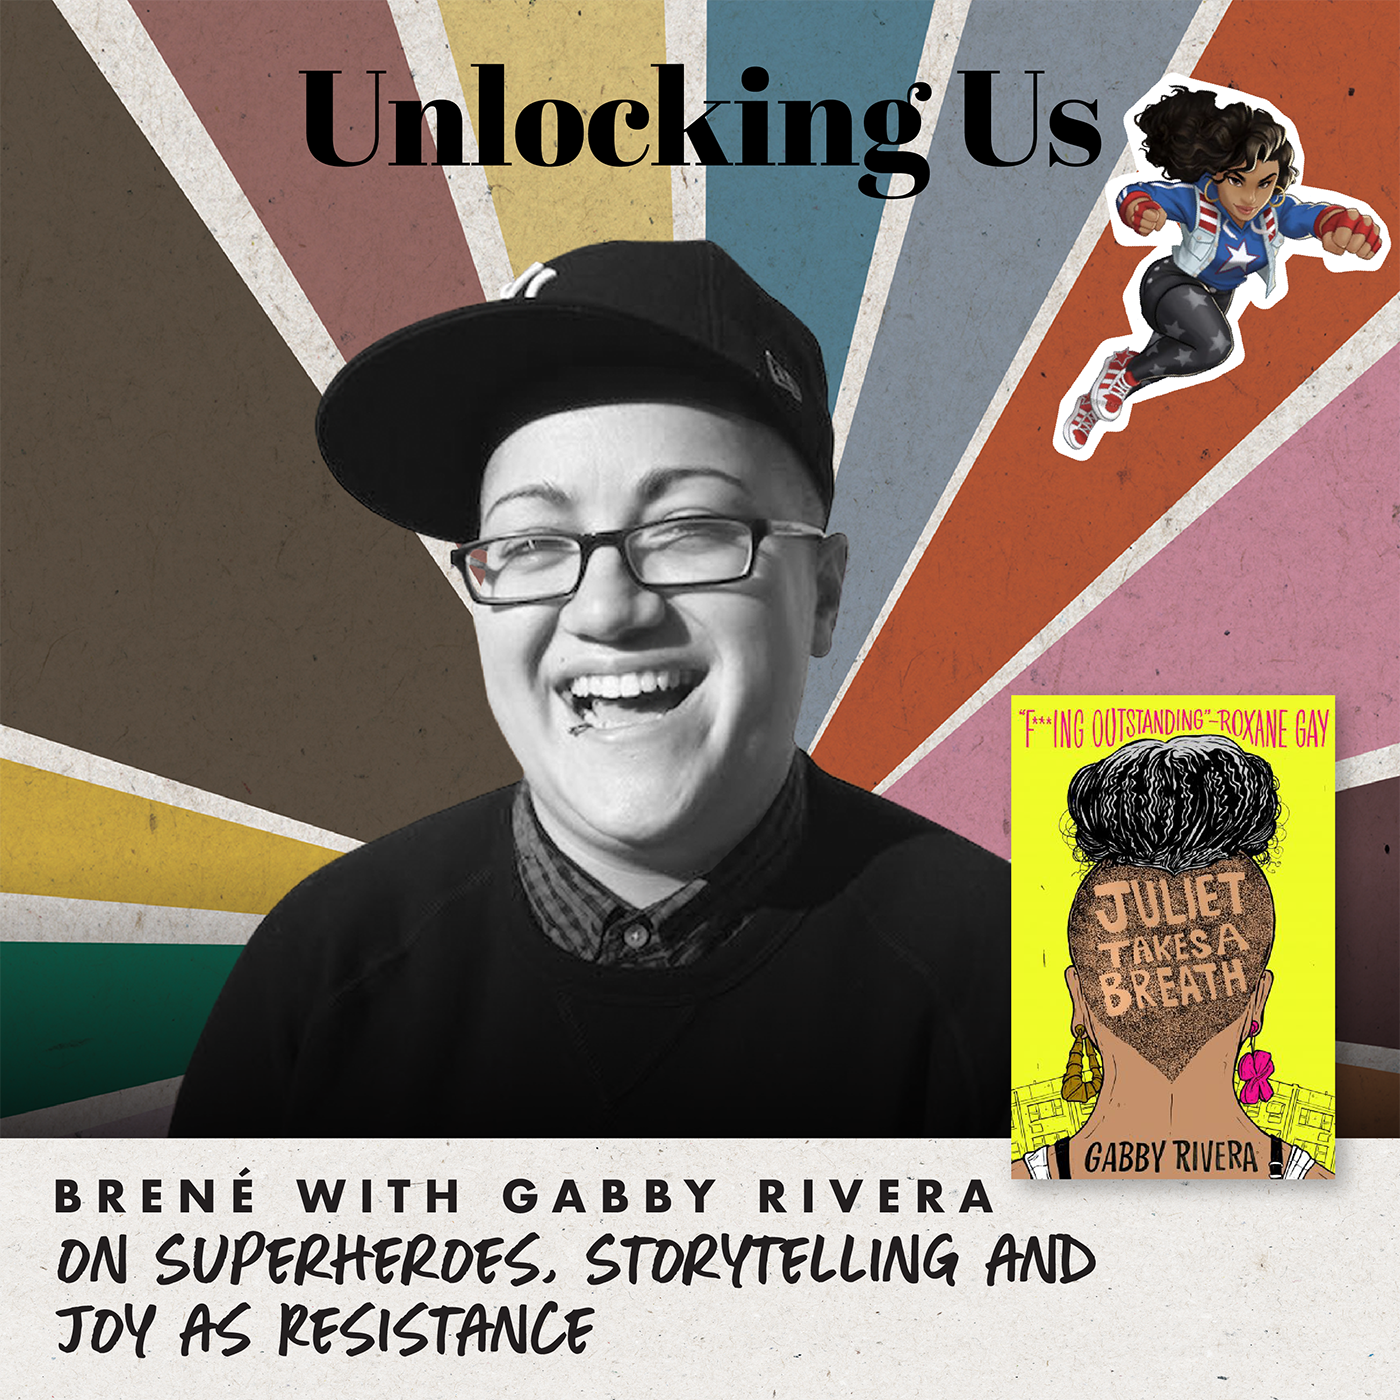 Brené with Gabby Rivera on Superheroes, Storytelling and Joy as Resistance